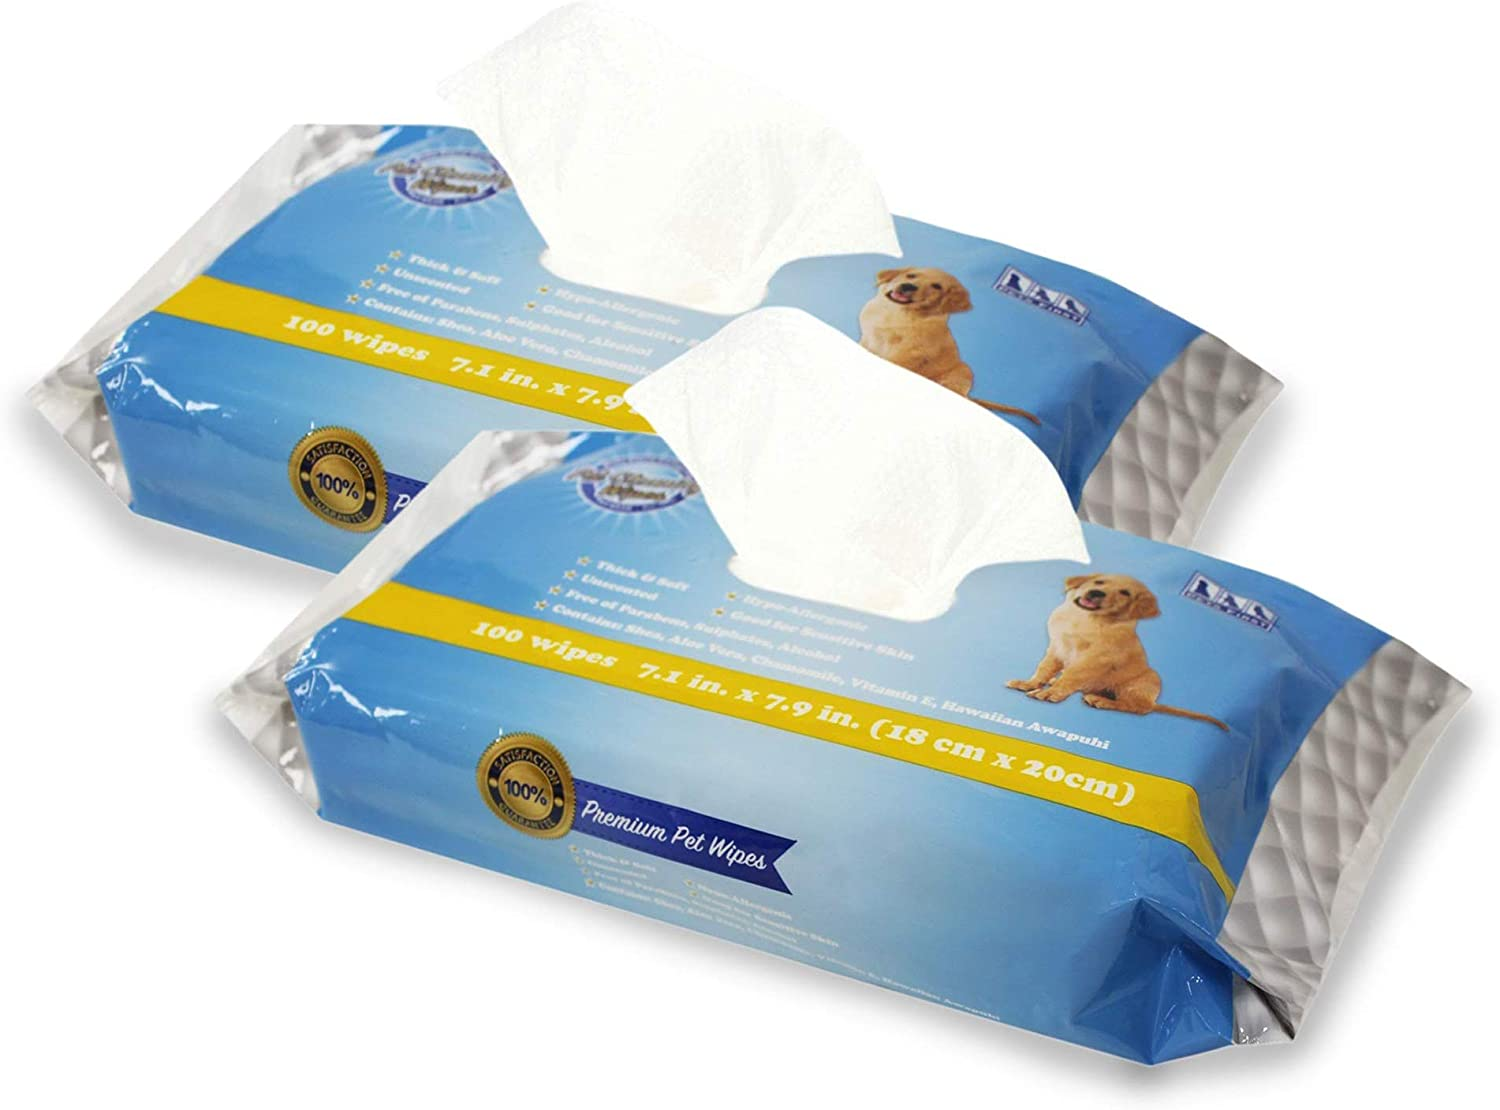 DOG New arrival GROOMING WIPES Hypoallergenic All-Natural Wipes. store LARGE Dog S